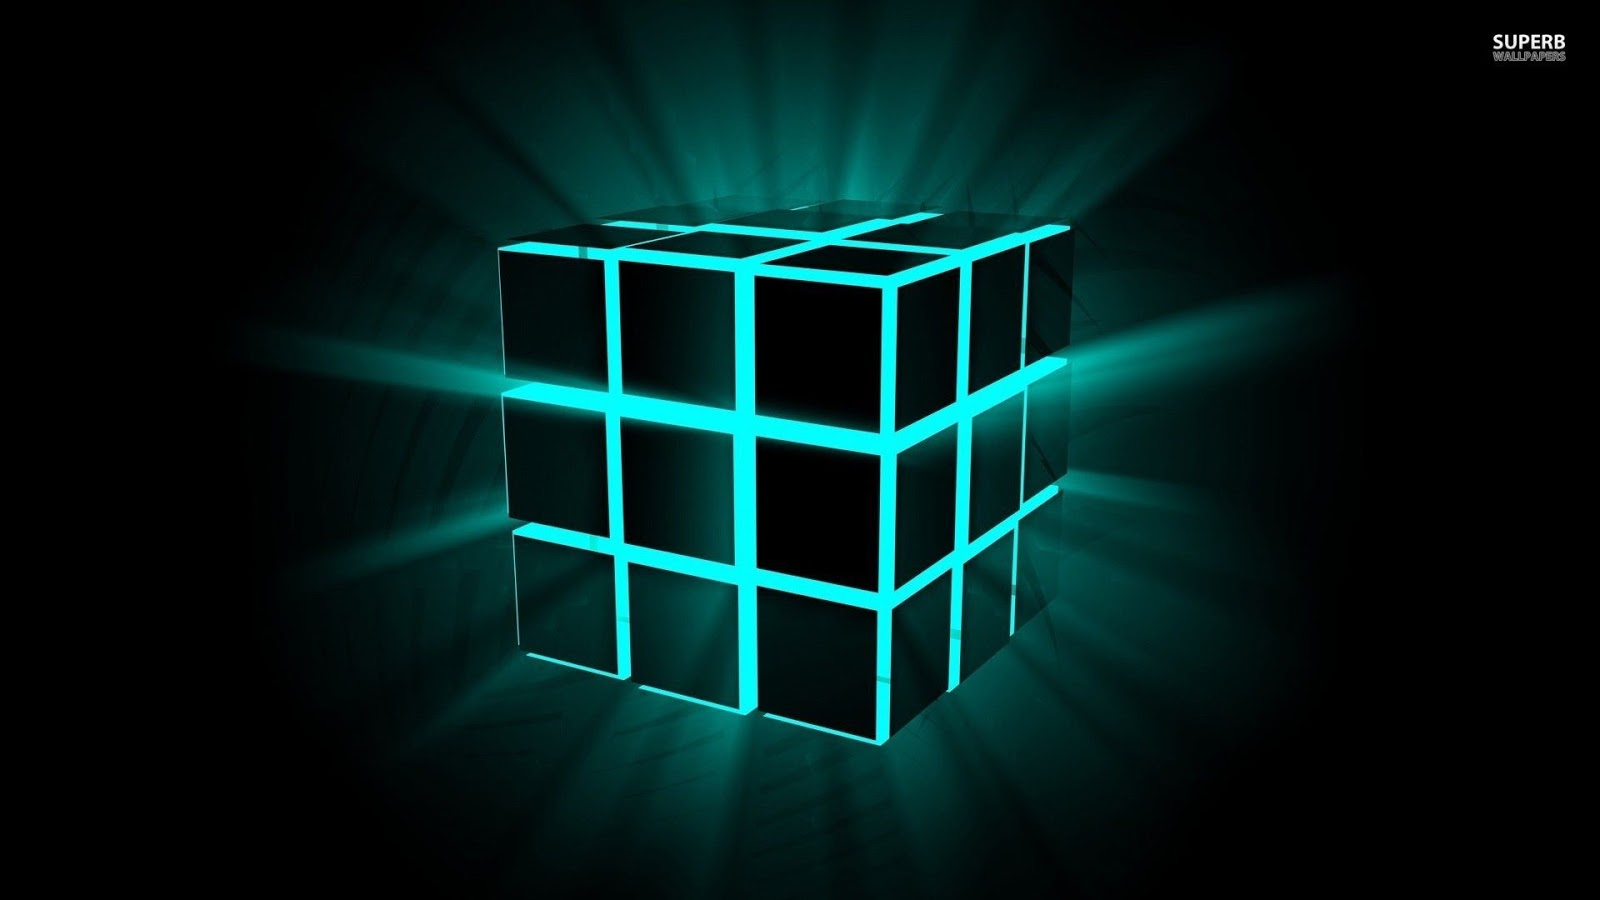 Neon Wallpapers for Android - Neon Rubik